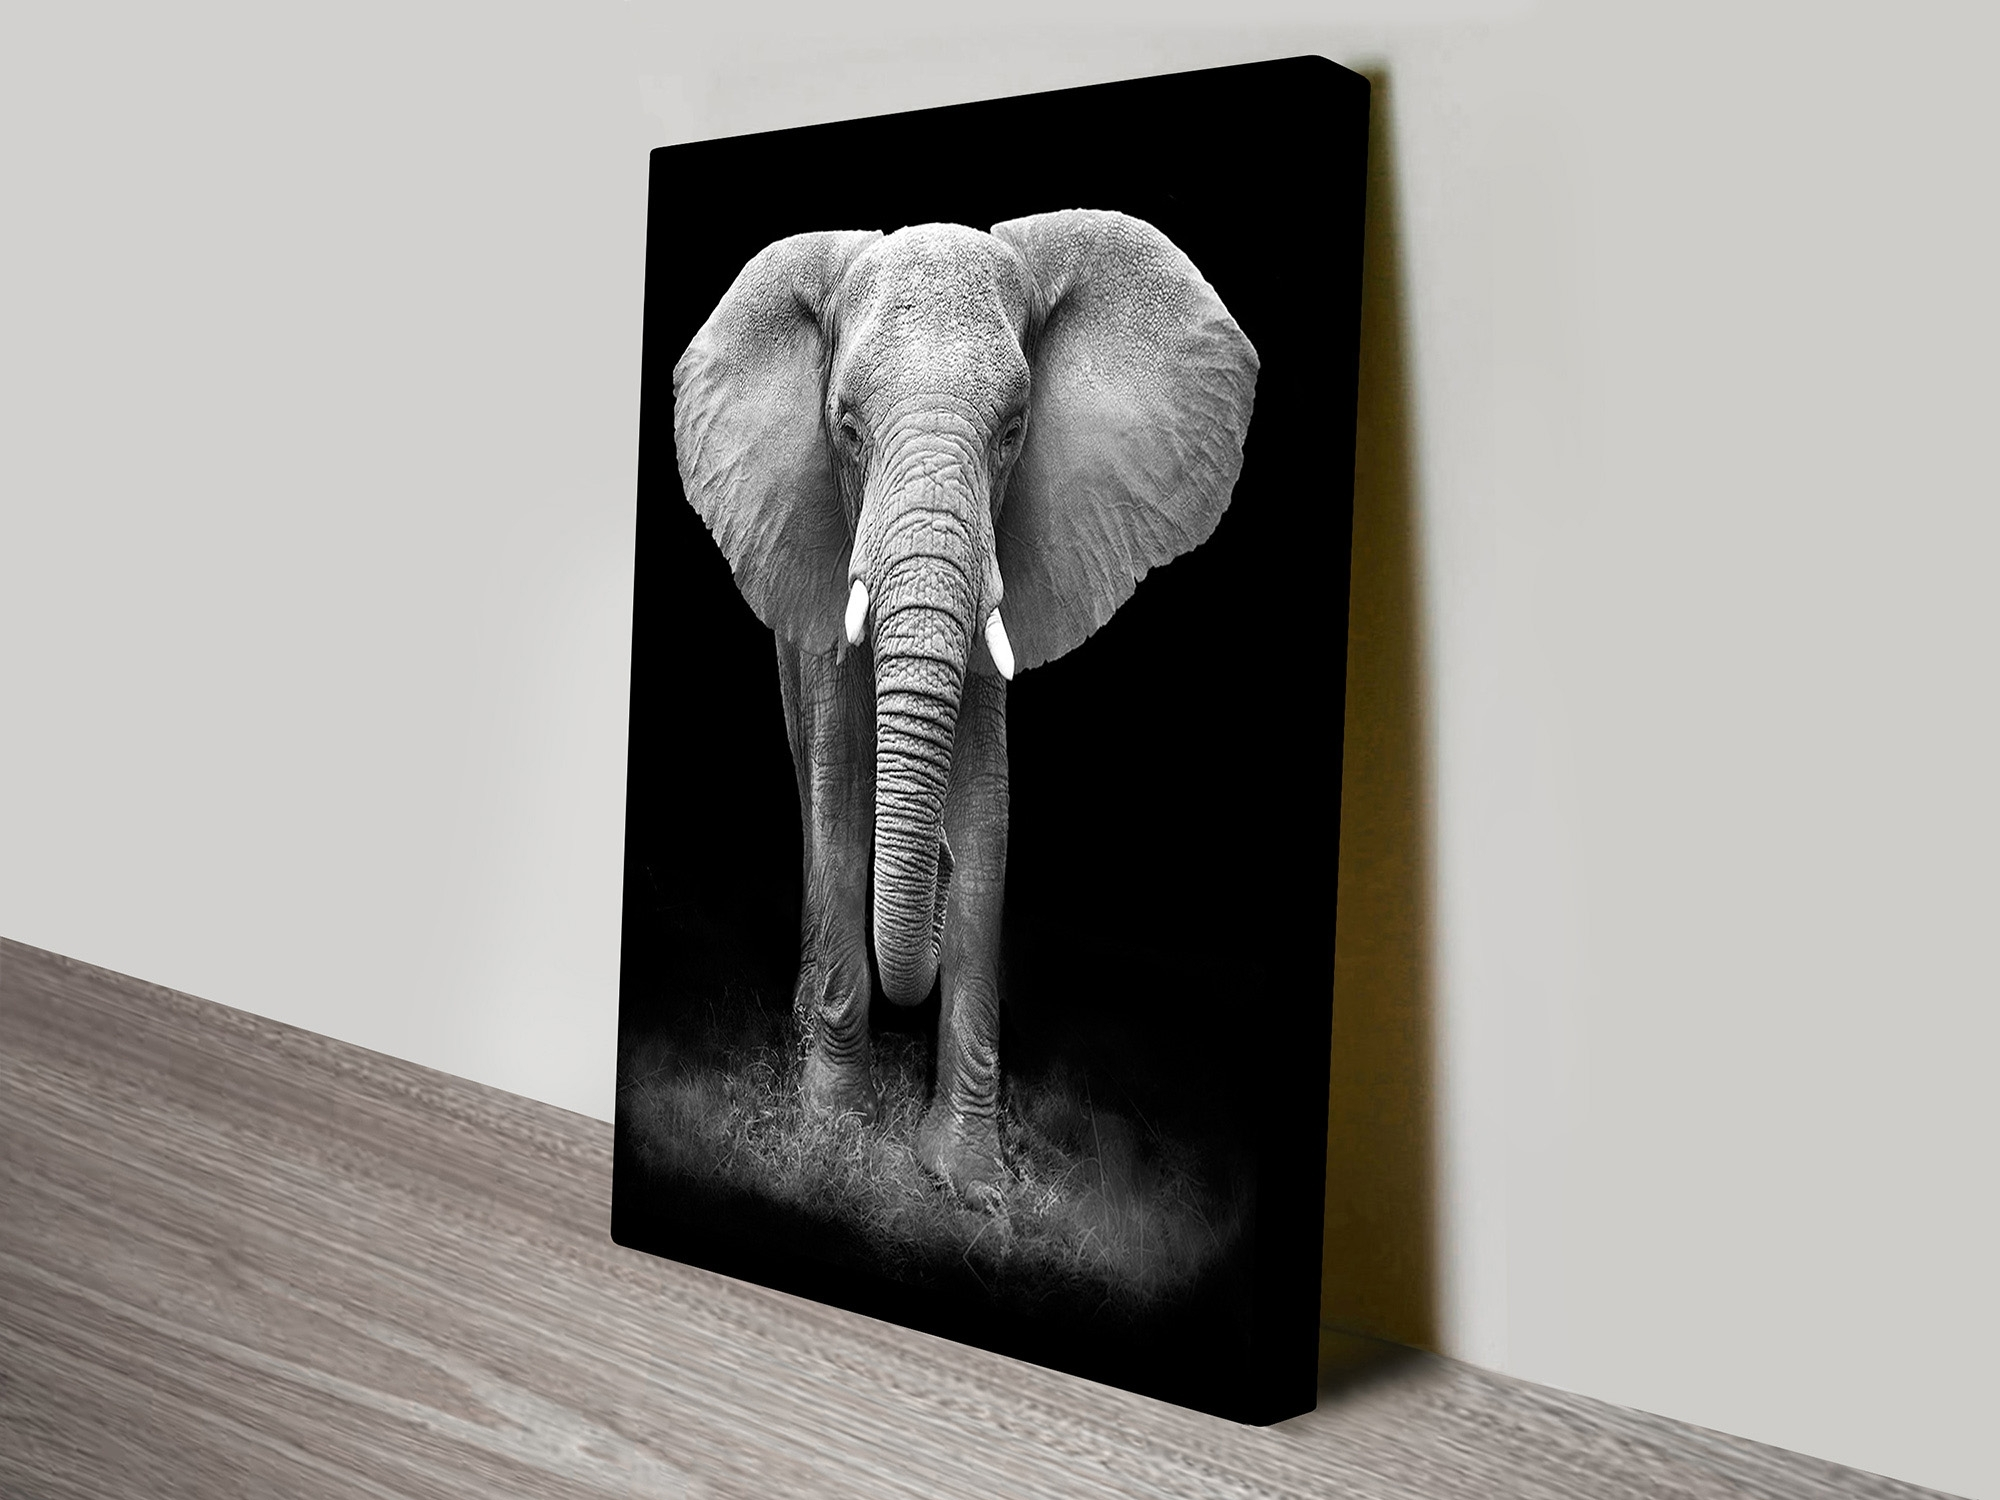 Gentle Giant Elephant Canvas Wall Art – Blue Horizon Prints With Regard To Most Popular Elephant Canvas Wall Art (Gallery 12 of 20)